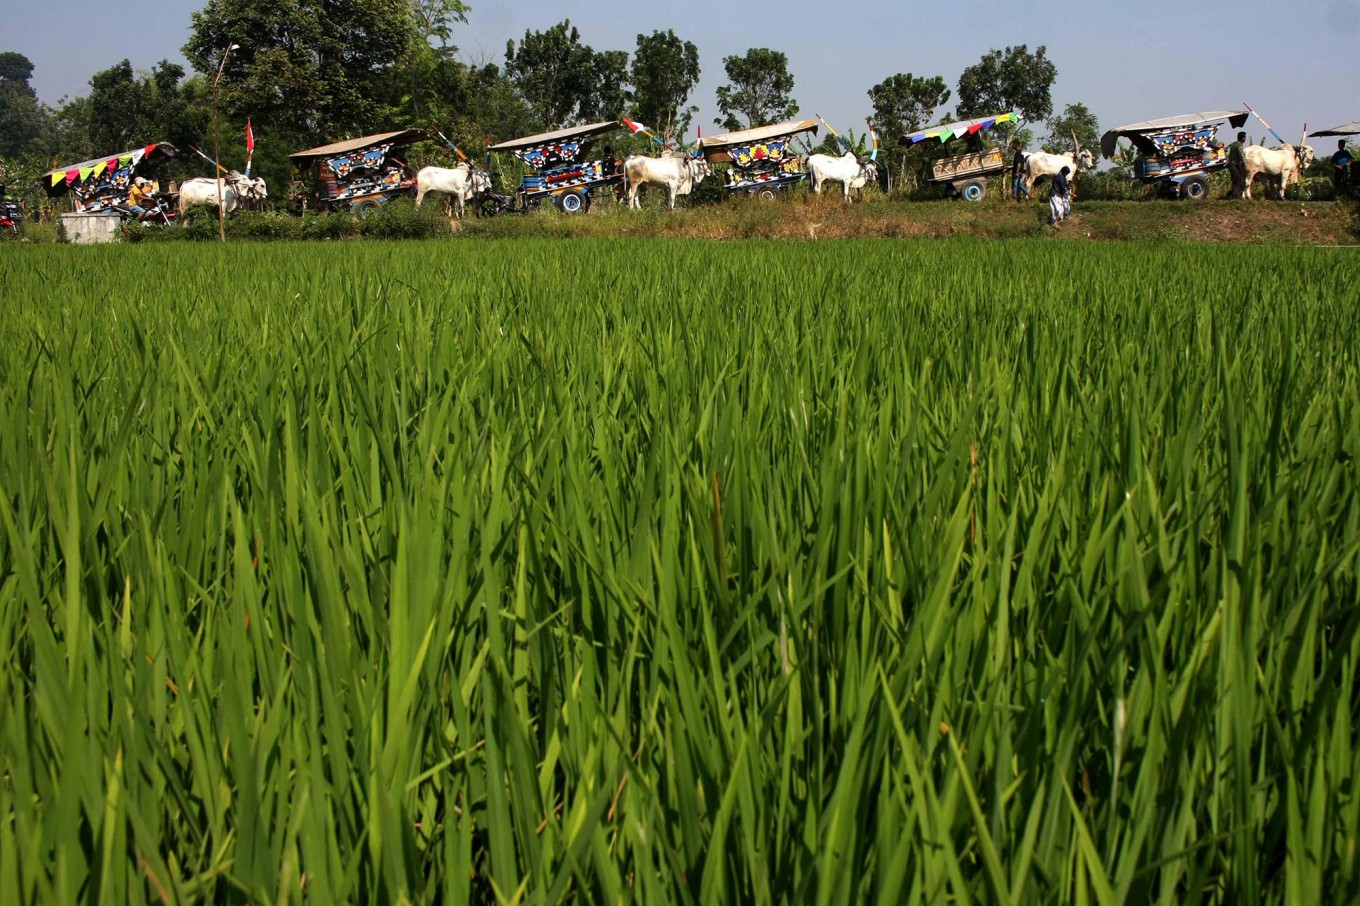 Bulog fails to reach target to absorb farmers' rice